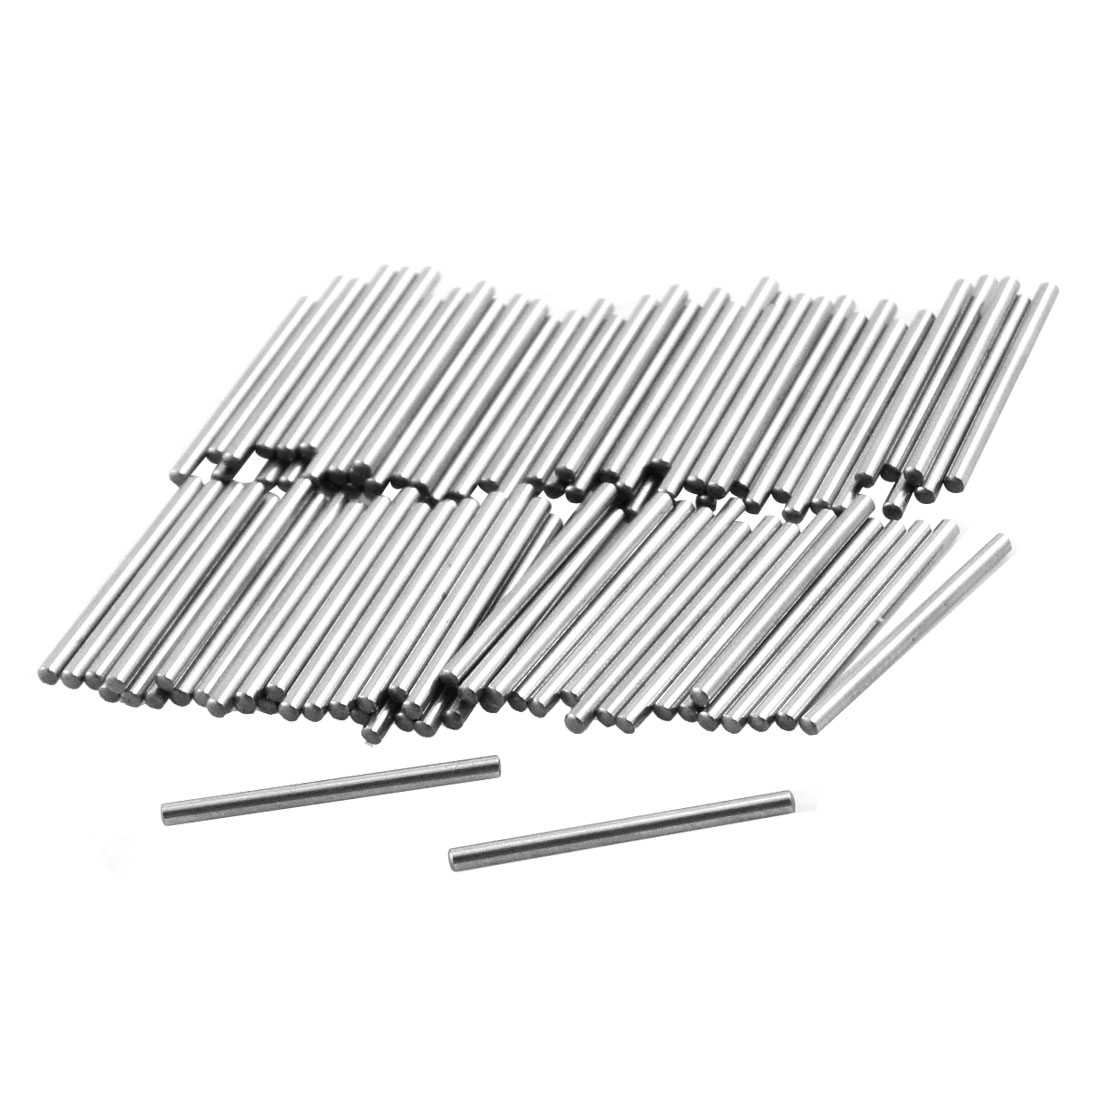 Unique Bargains 100 Pcs 1.1mm x 15.8mm Parallel Dowel Pins Fasten Elements